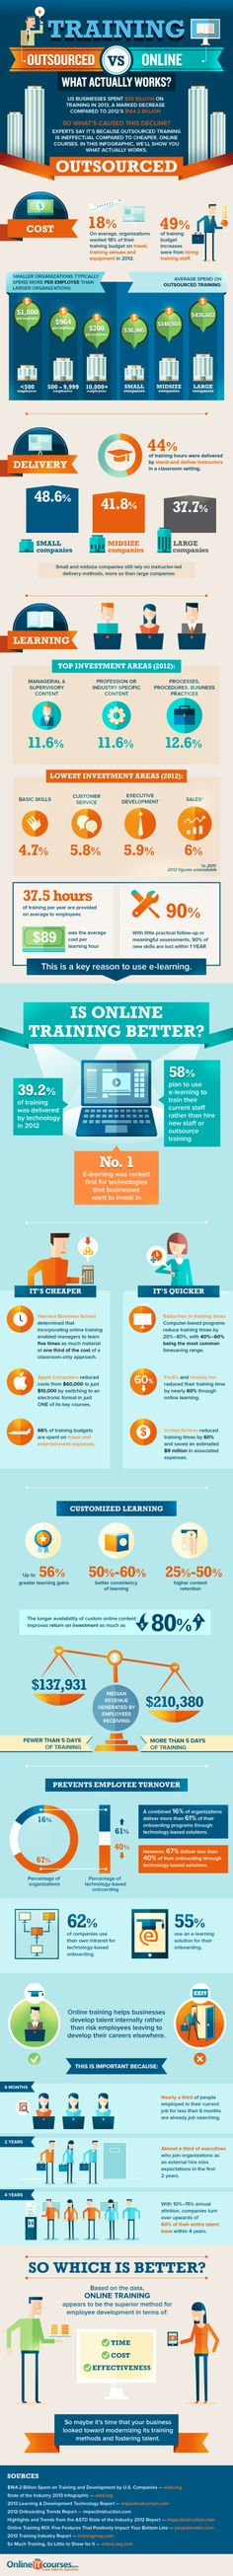 Outsourced vs Online Training - What Actually Works?   #Outsourcing #Business #OnlineCources #infographic